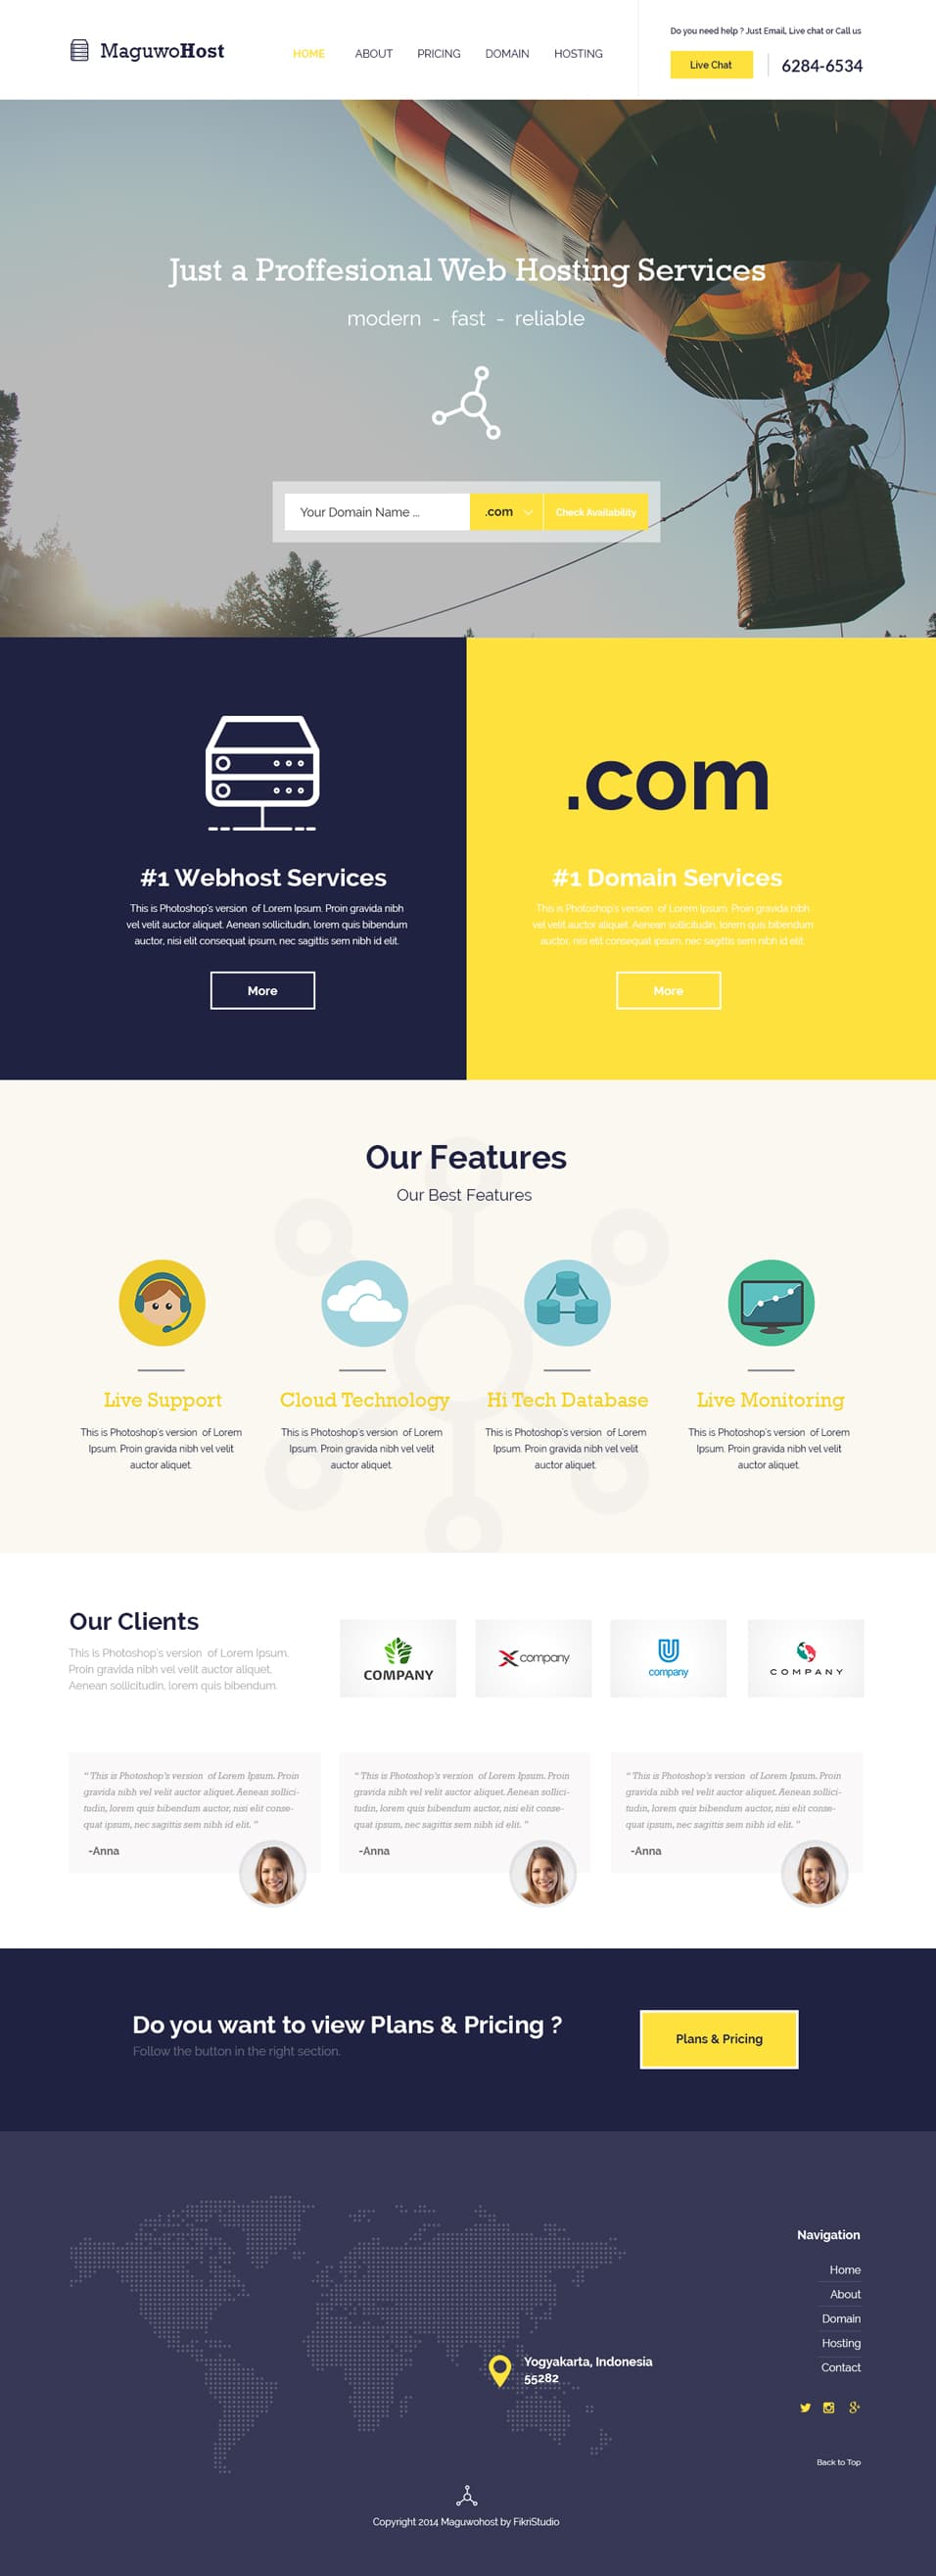 Maguwohost Free Hosting Template